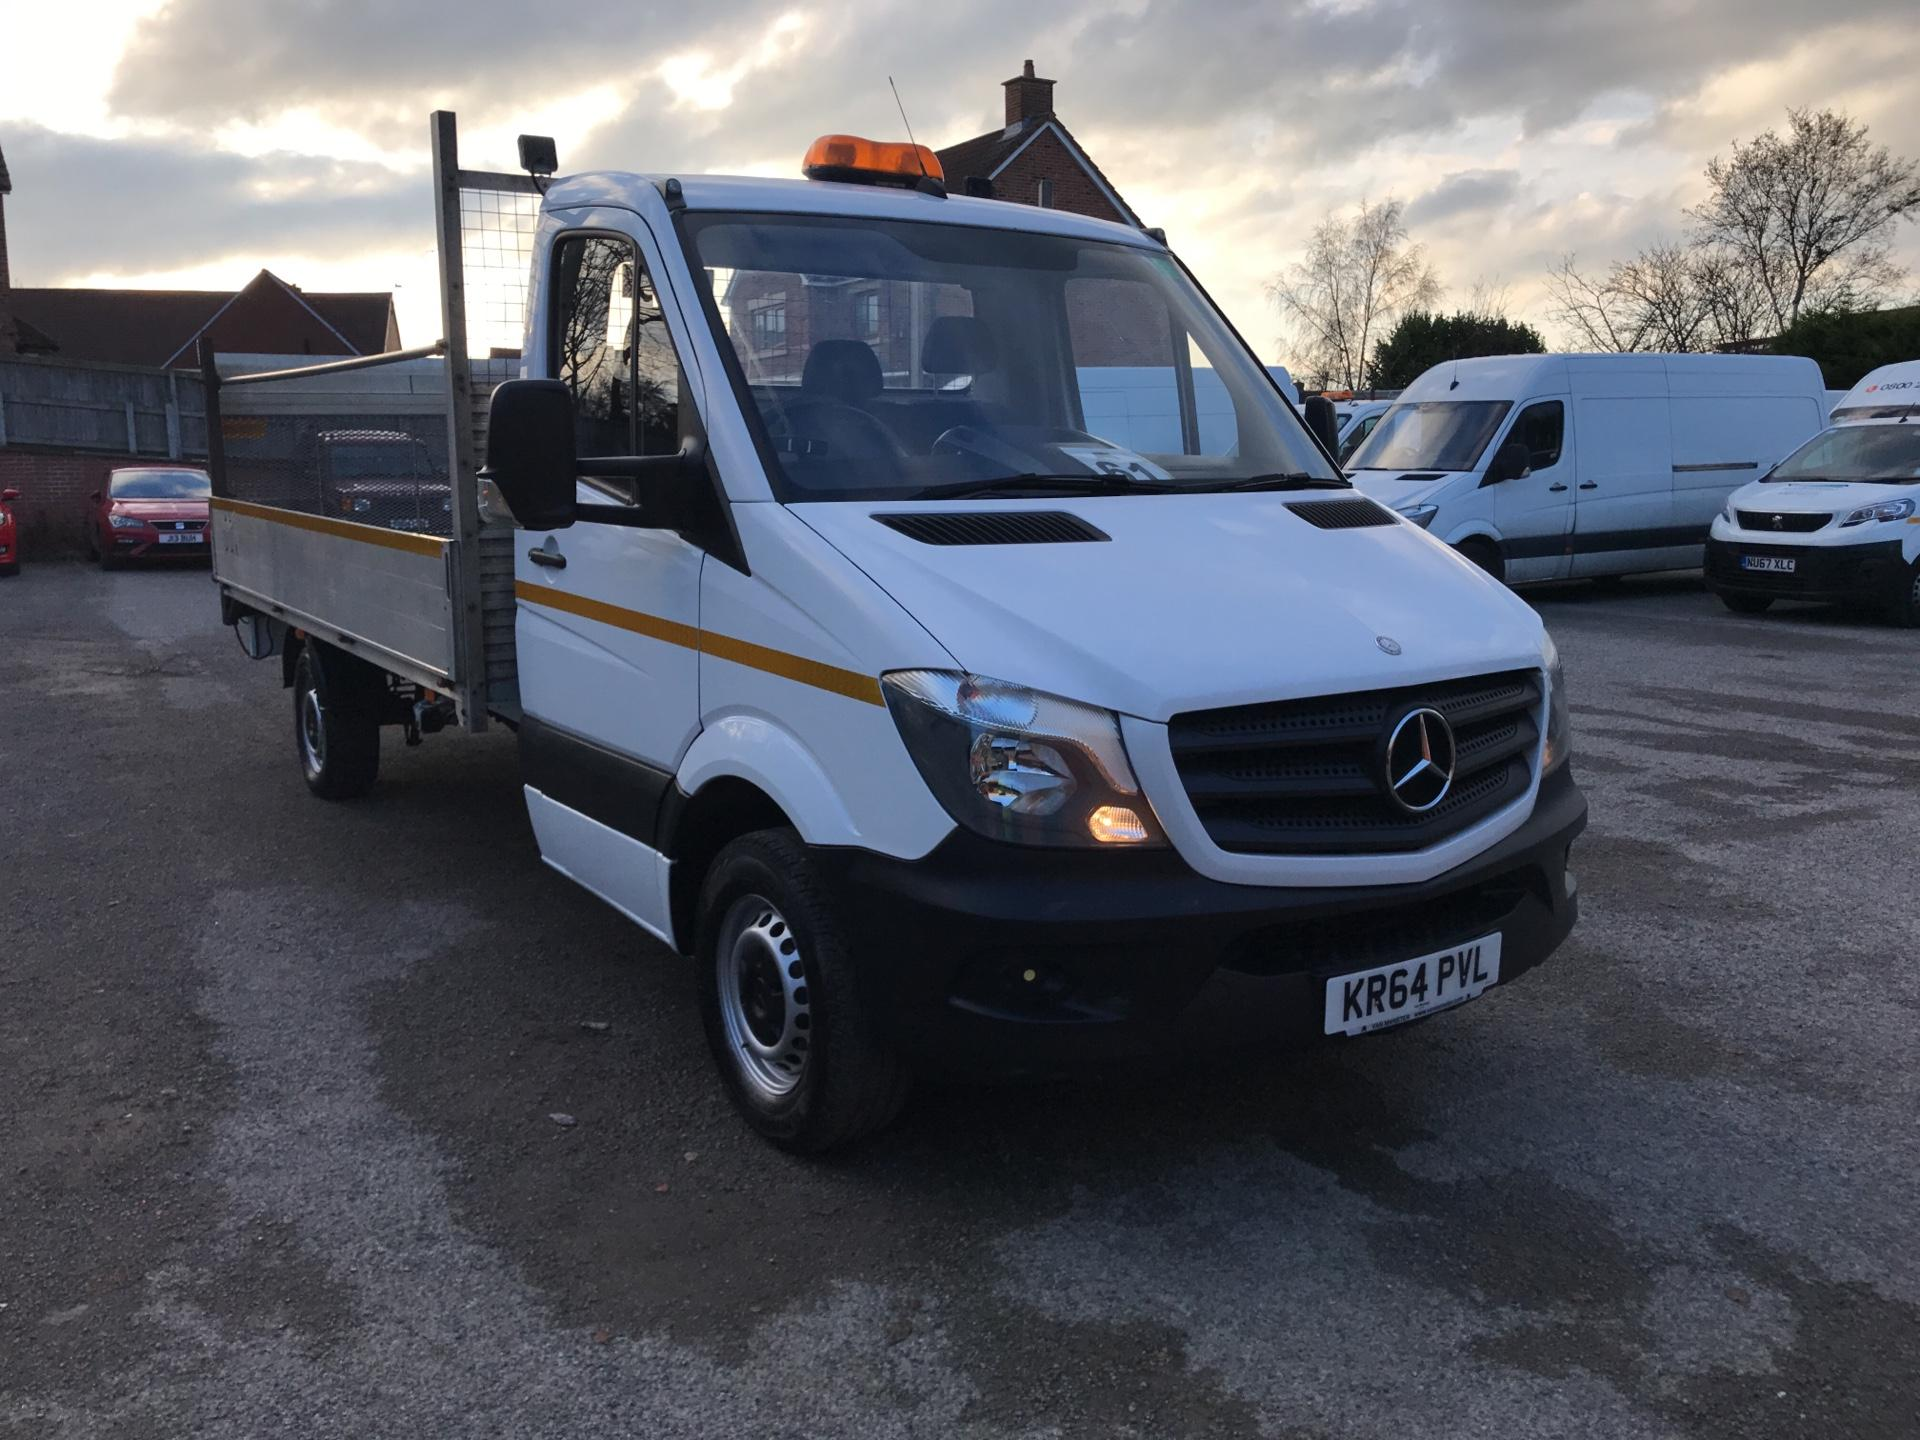 2015 Mercedes-Benz Sprinter 313 CDI LWB  DROPSIDE  EURO 5 Tail Lift *VALUE RANGE VEHICLE CONDITION REFLECTED IN PRICE* (KR64PVL)